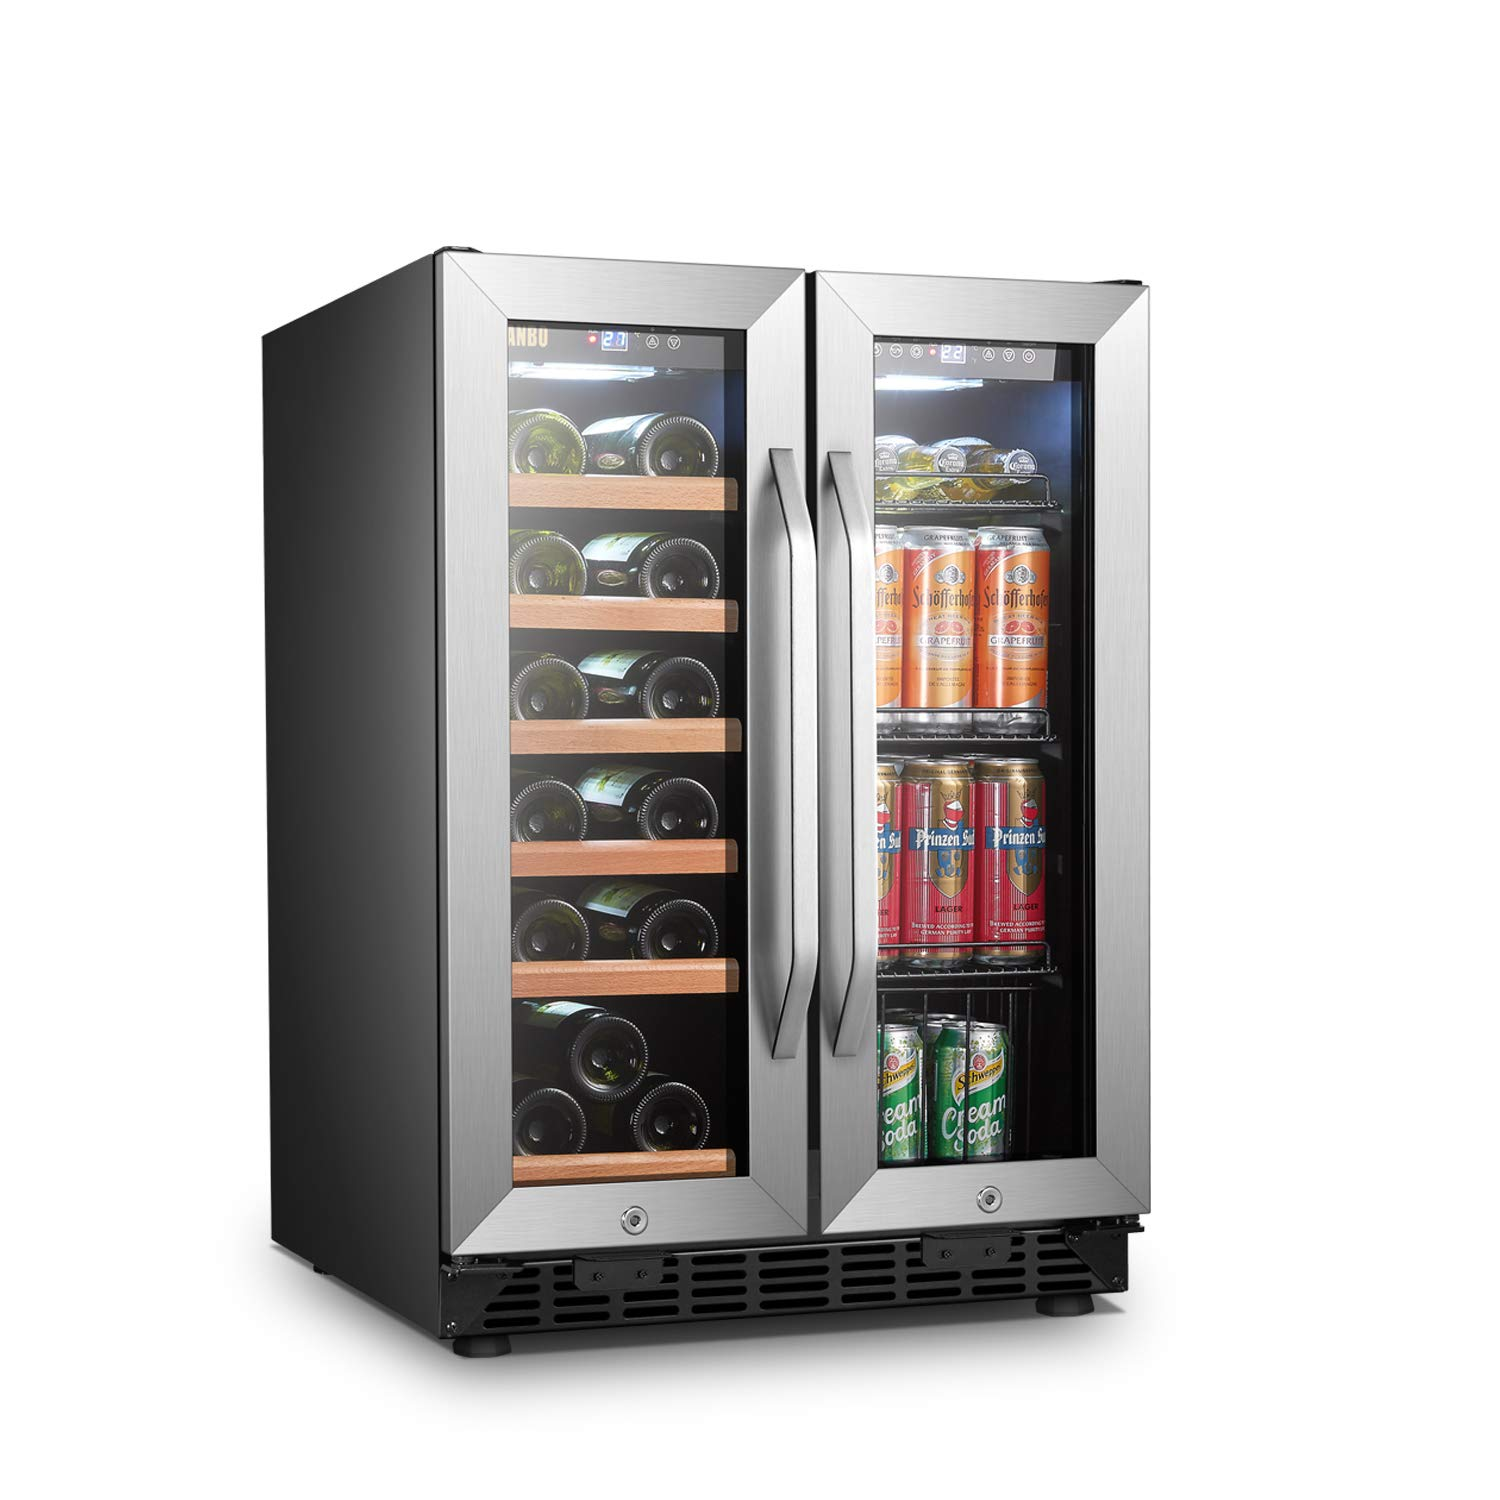 LANBO Wine and Beverage Refrigerator, Compact Built-in Wine and Drink Center Combo, 18 Bottle and 55 Can